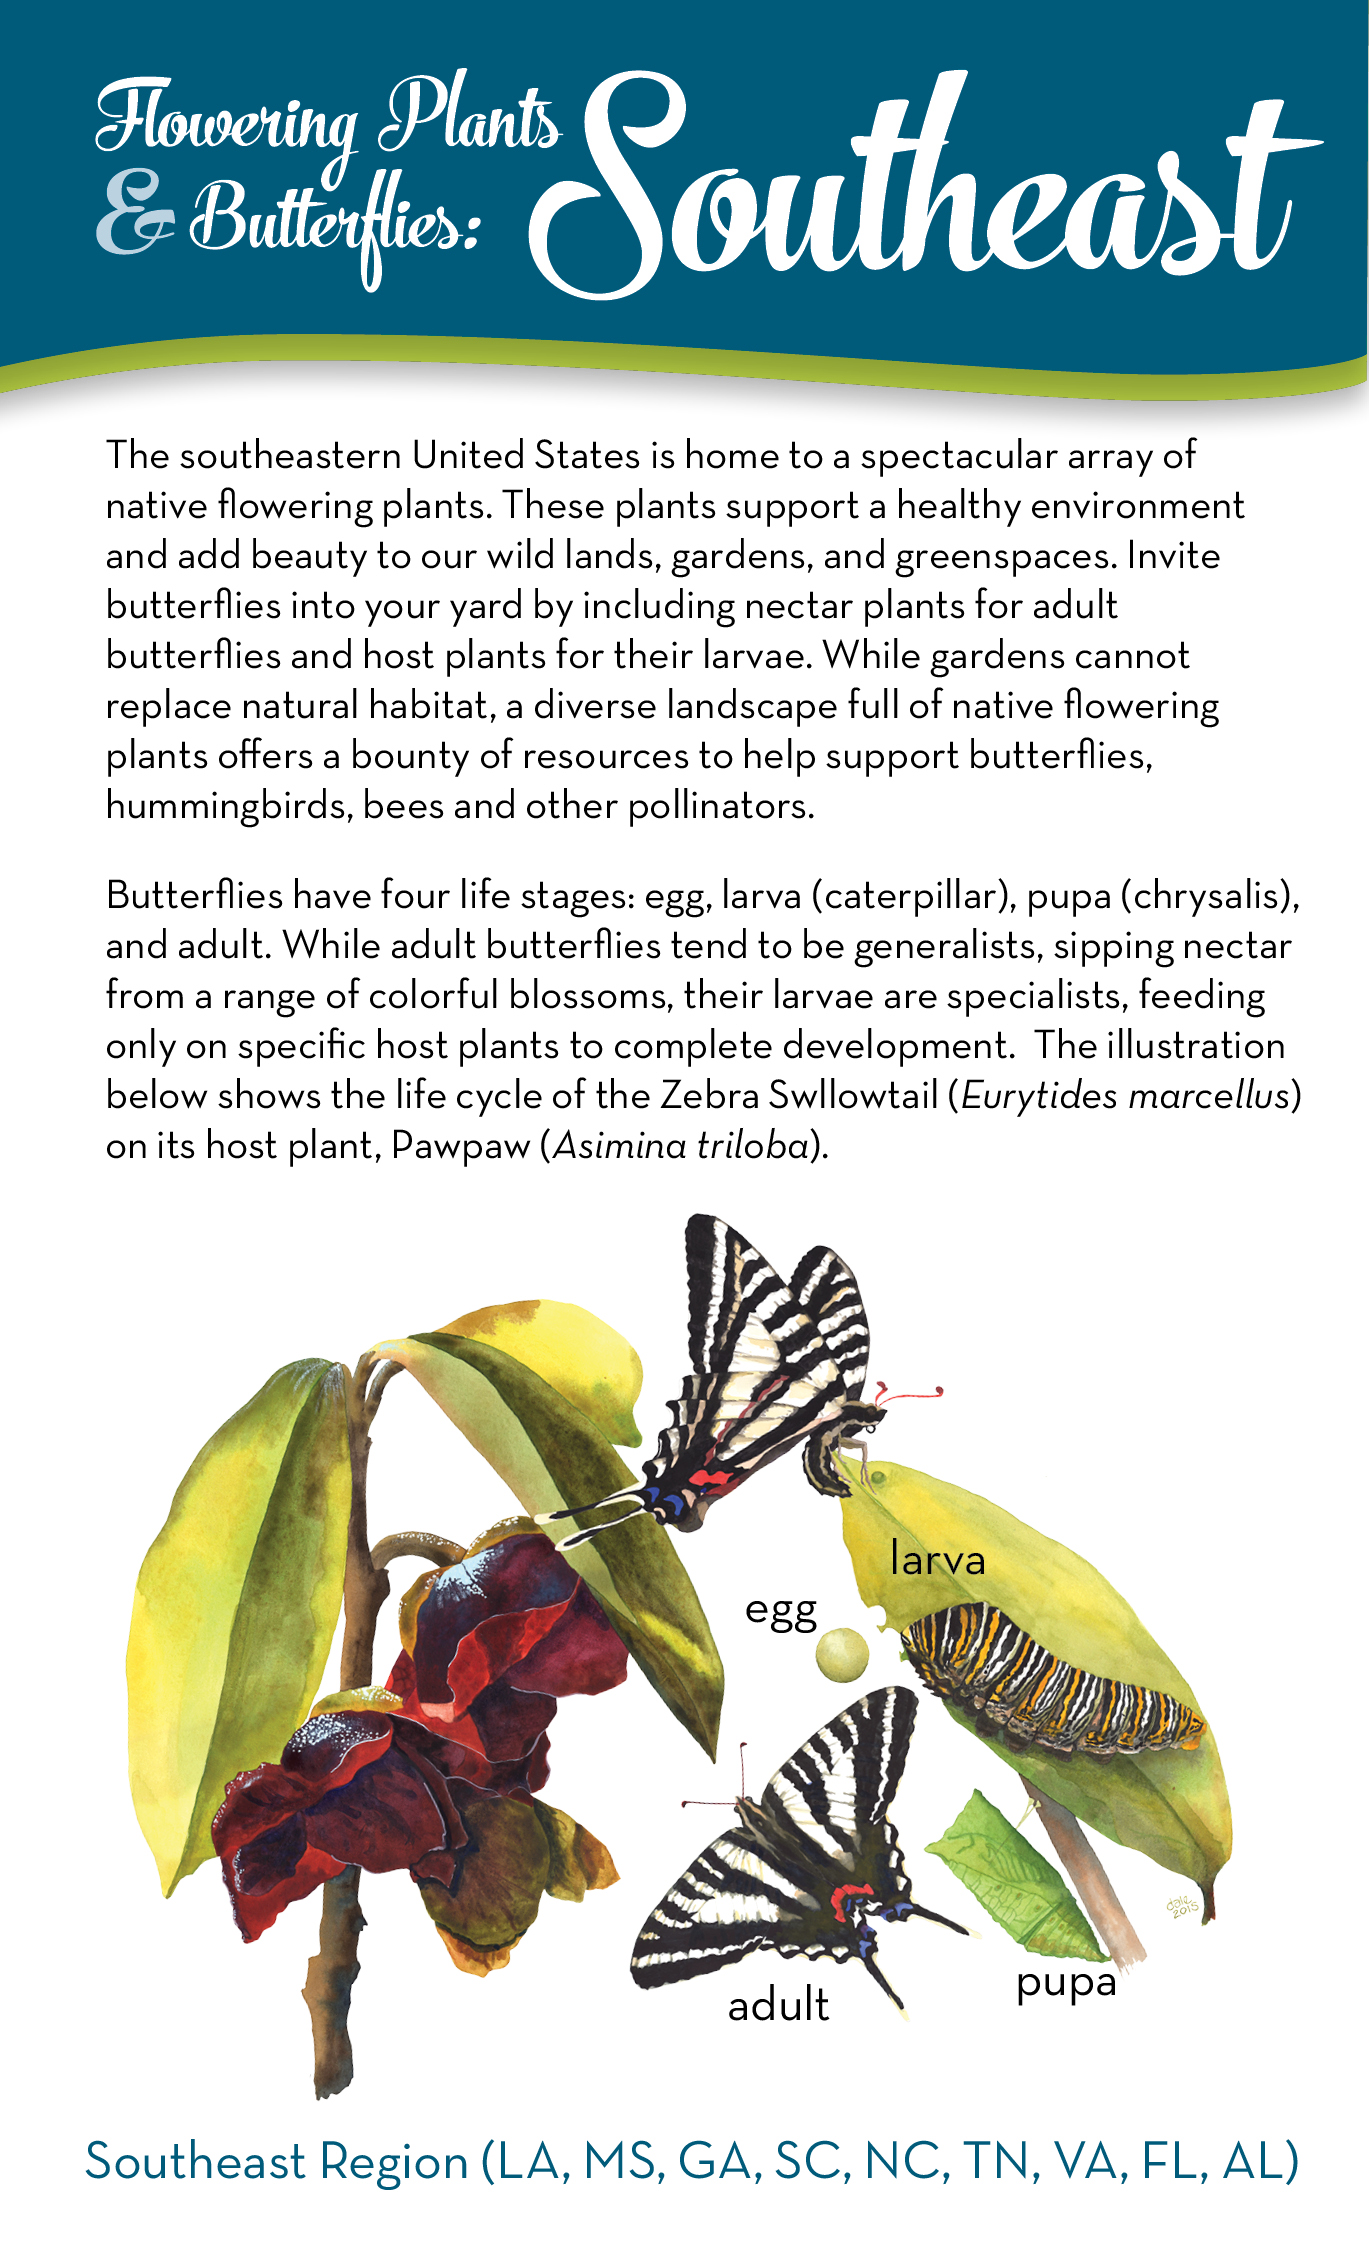 Flowering Plants and Butterflies of the Southeastern US brochure